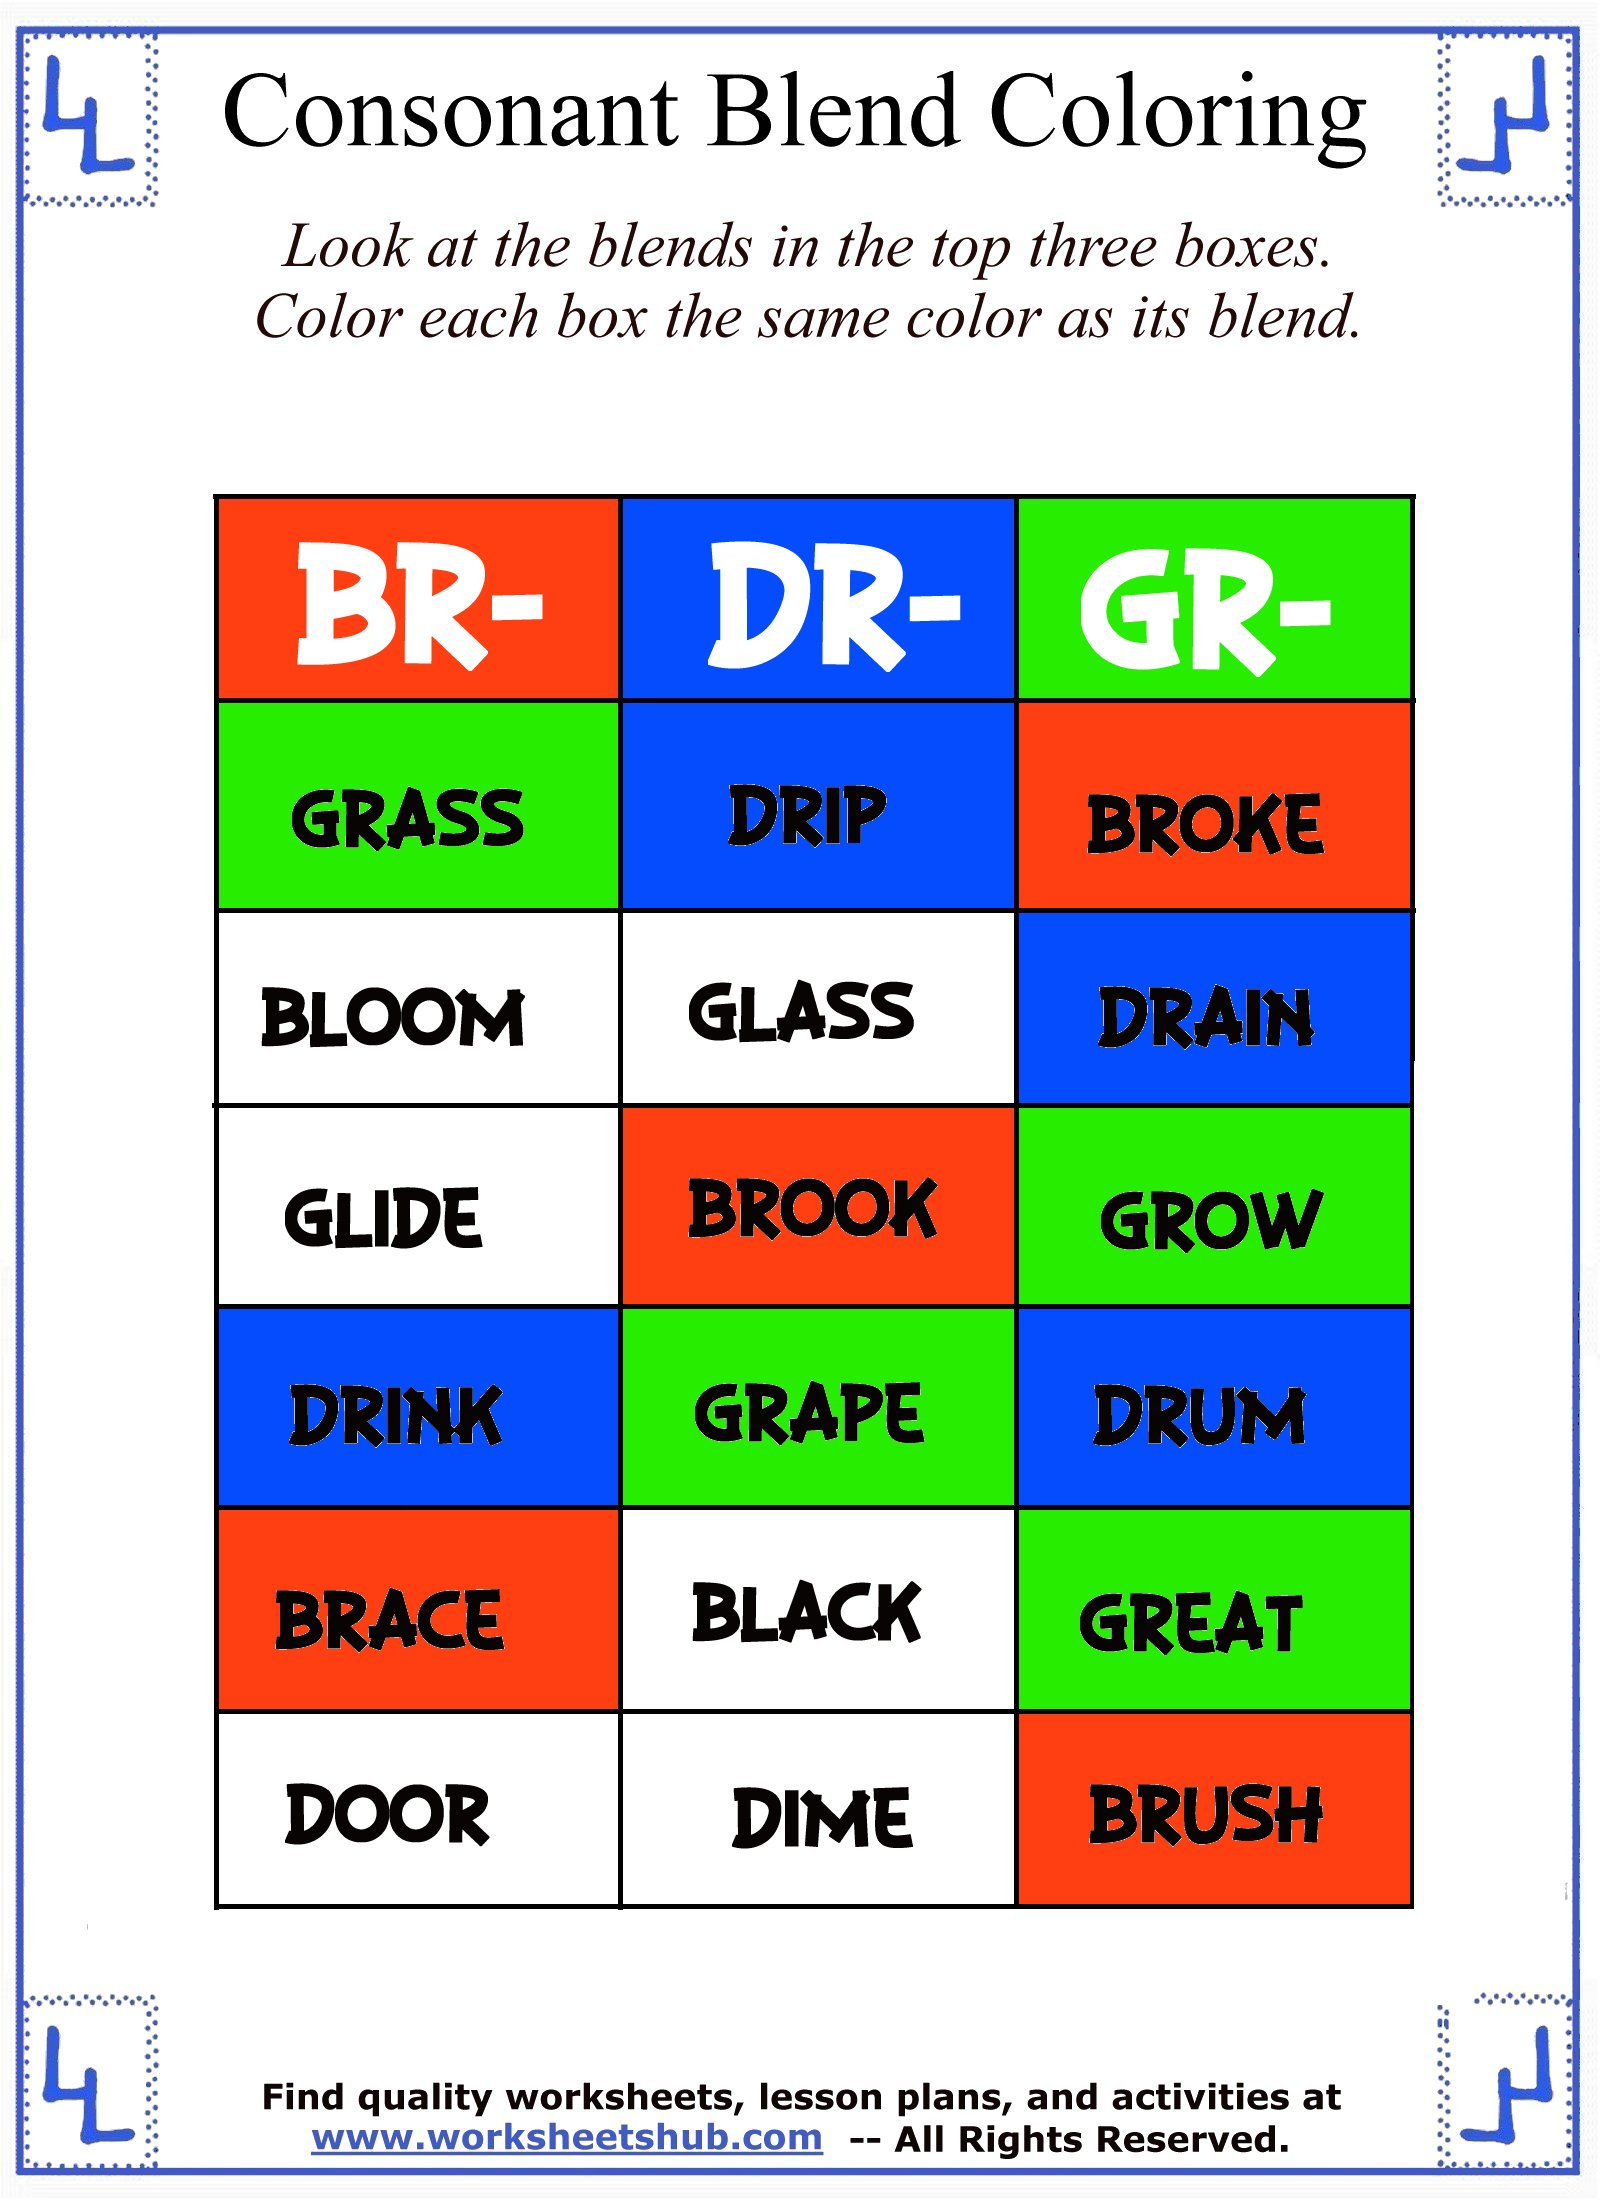 Worksheet Consonant Blend Worksheets Worksheet Fun Worksheet Study Site